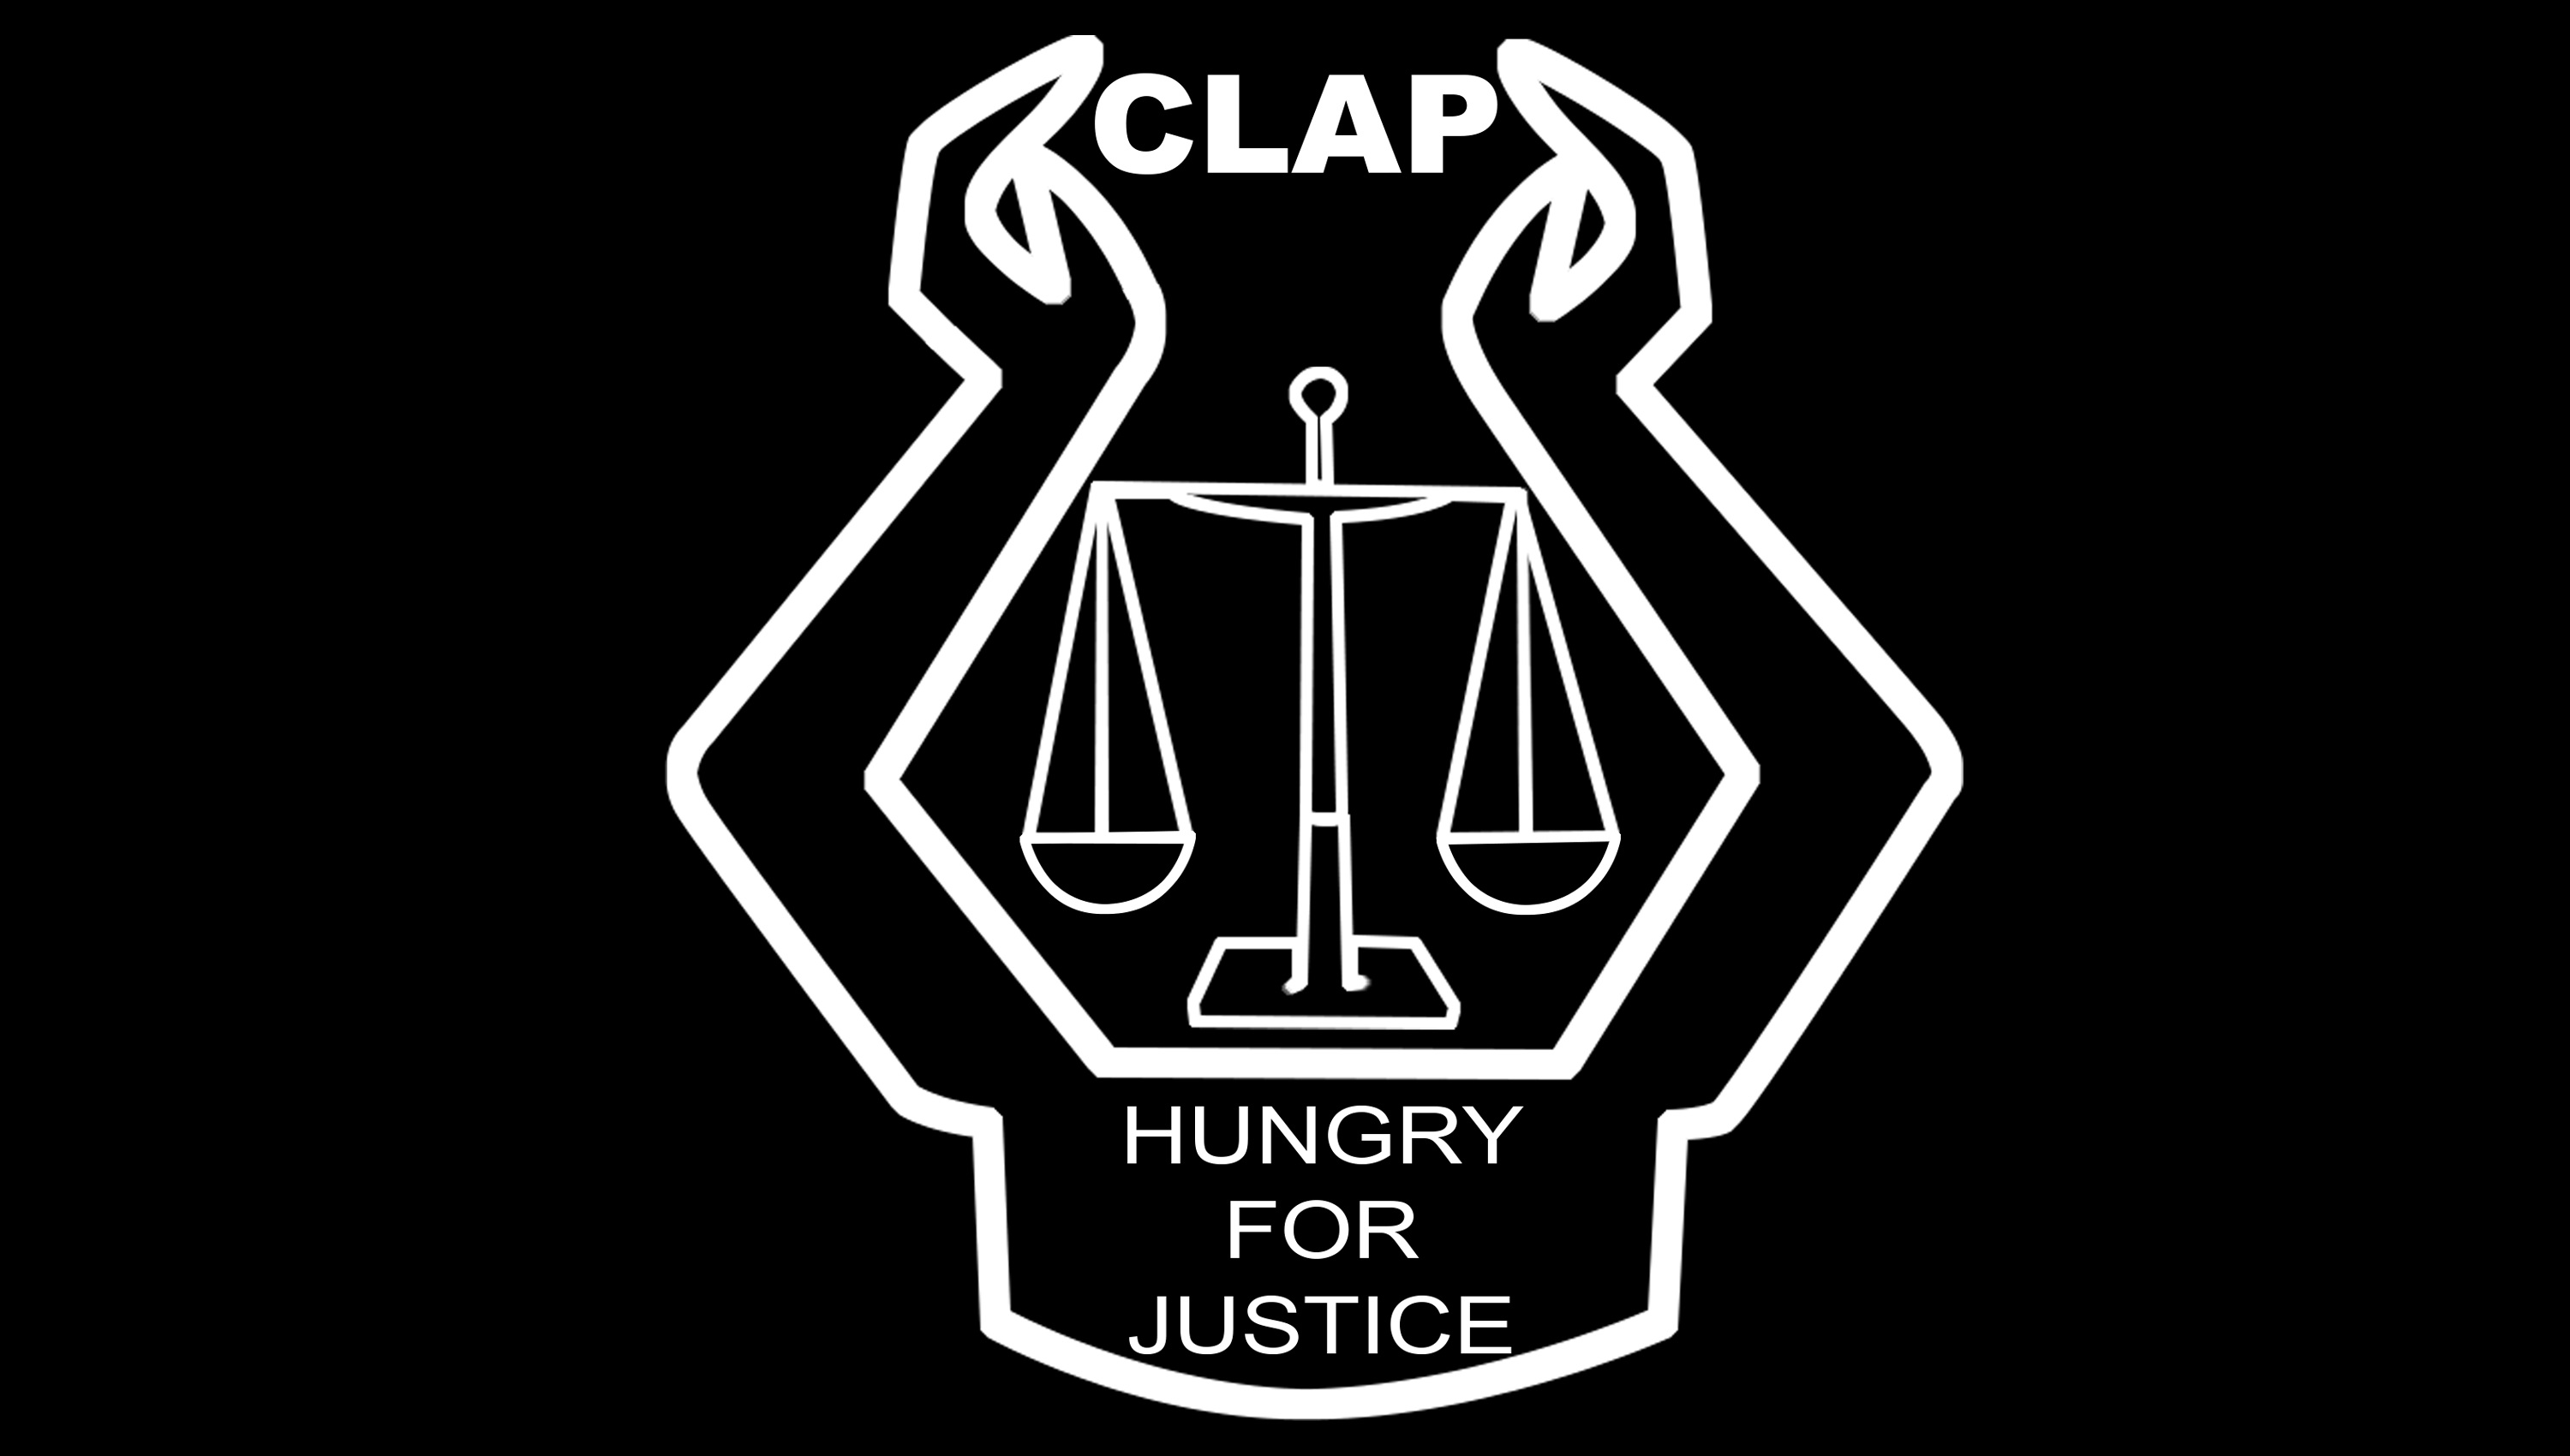 Committee for Legal Aid to Poor (CLAP)